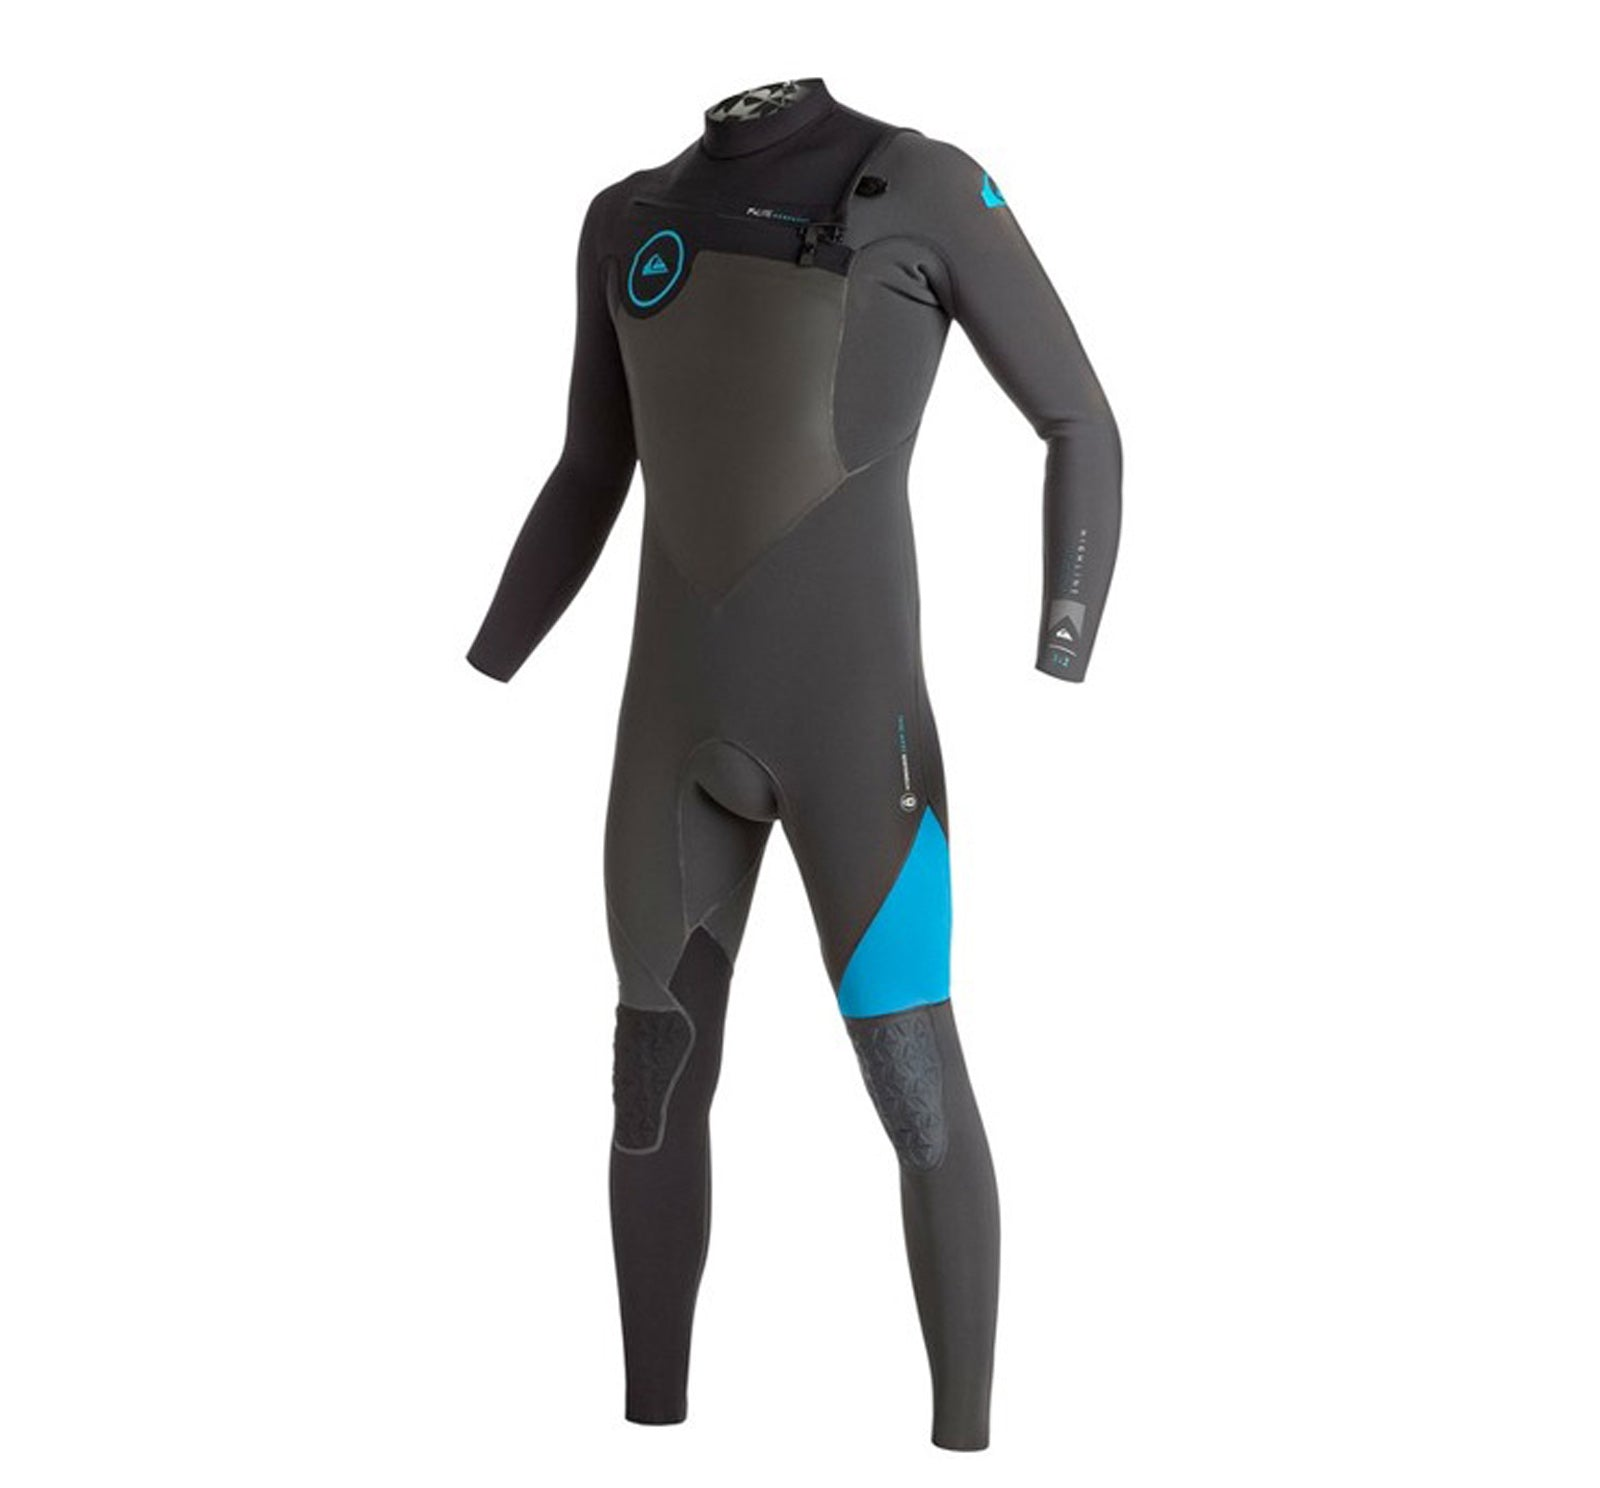 Quiksilver Highline Performance 3/2mm Men's Chest Zip Fullsuit Wetsuit